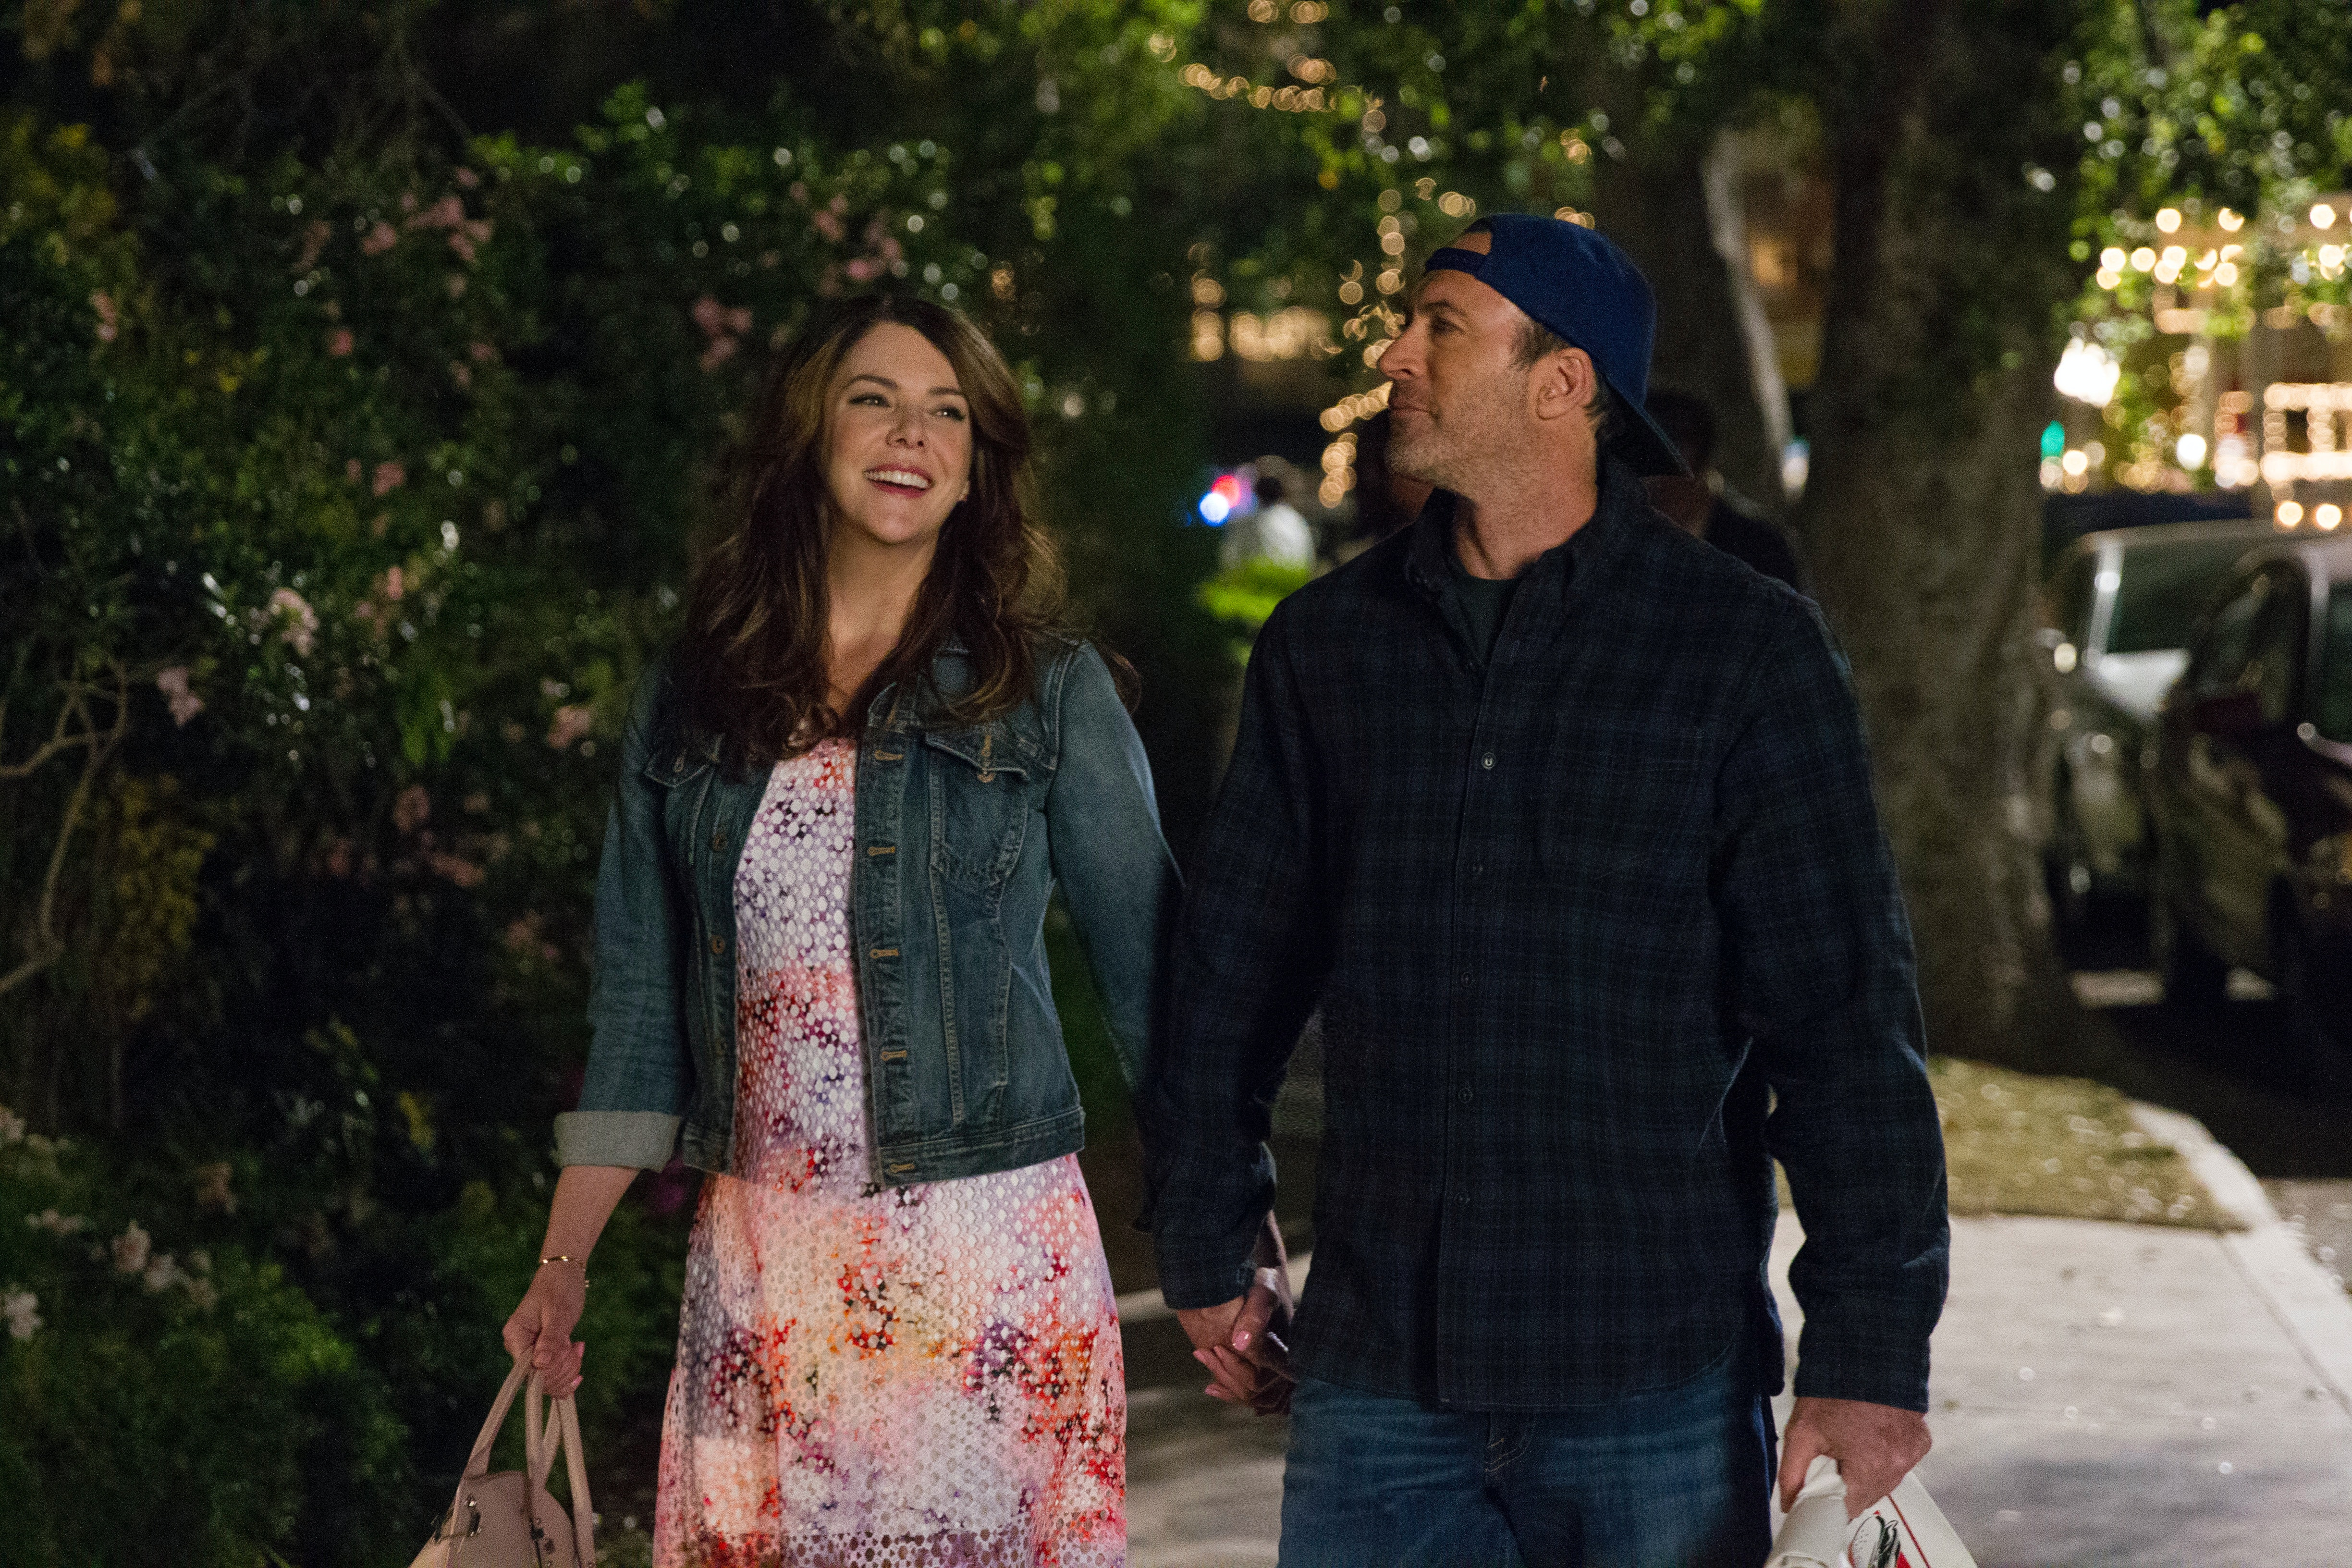 Does This Picture Hint That Someone's Pregnant in the 'Gilmore Girls' Revival?